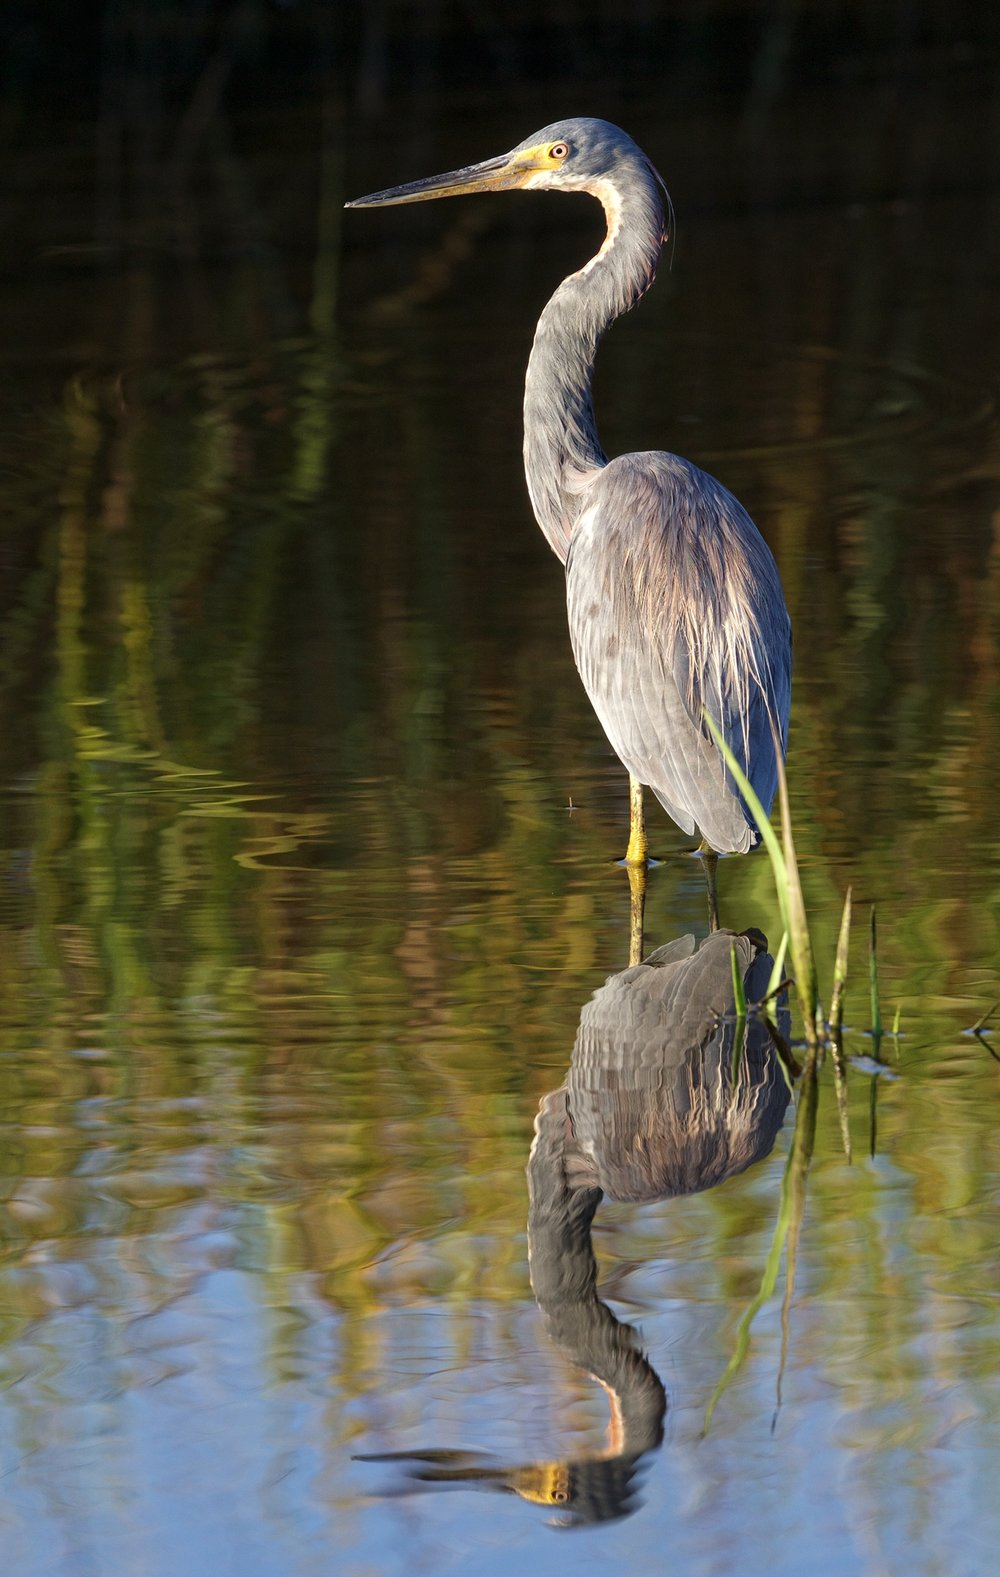 Shortly after that this Tricolored Heron flew in and also began hunting minnows and shrimp